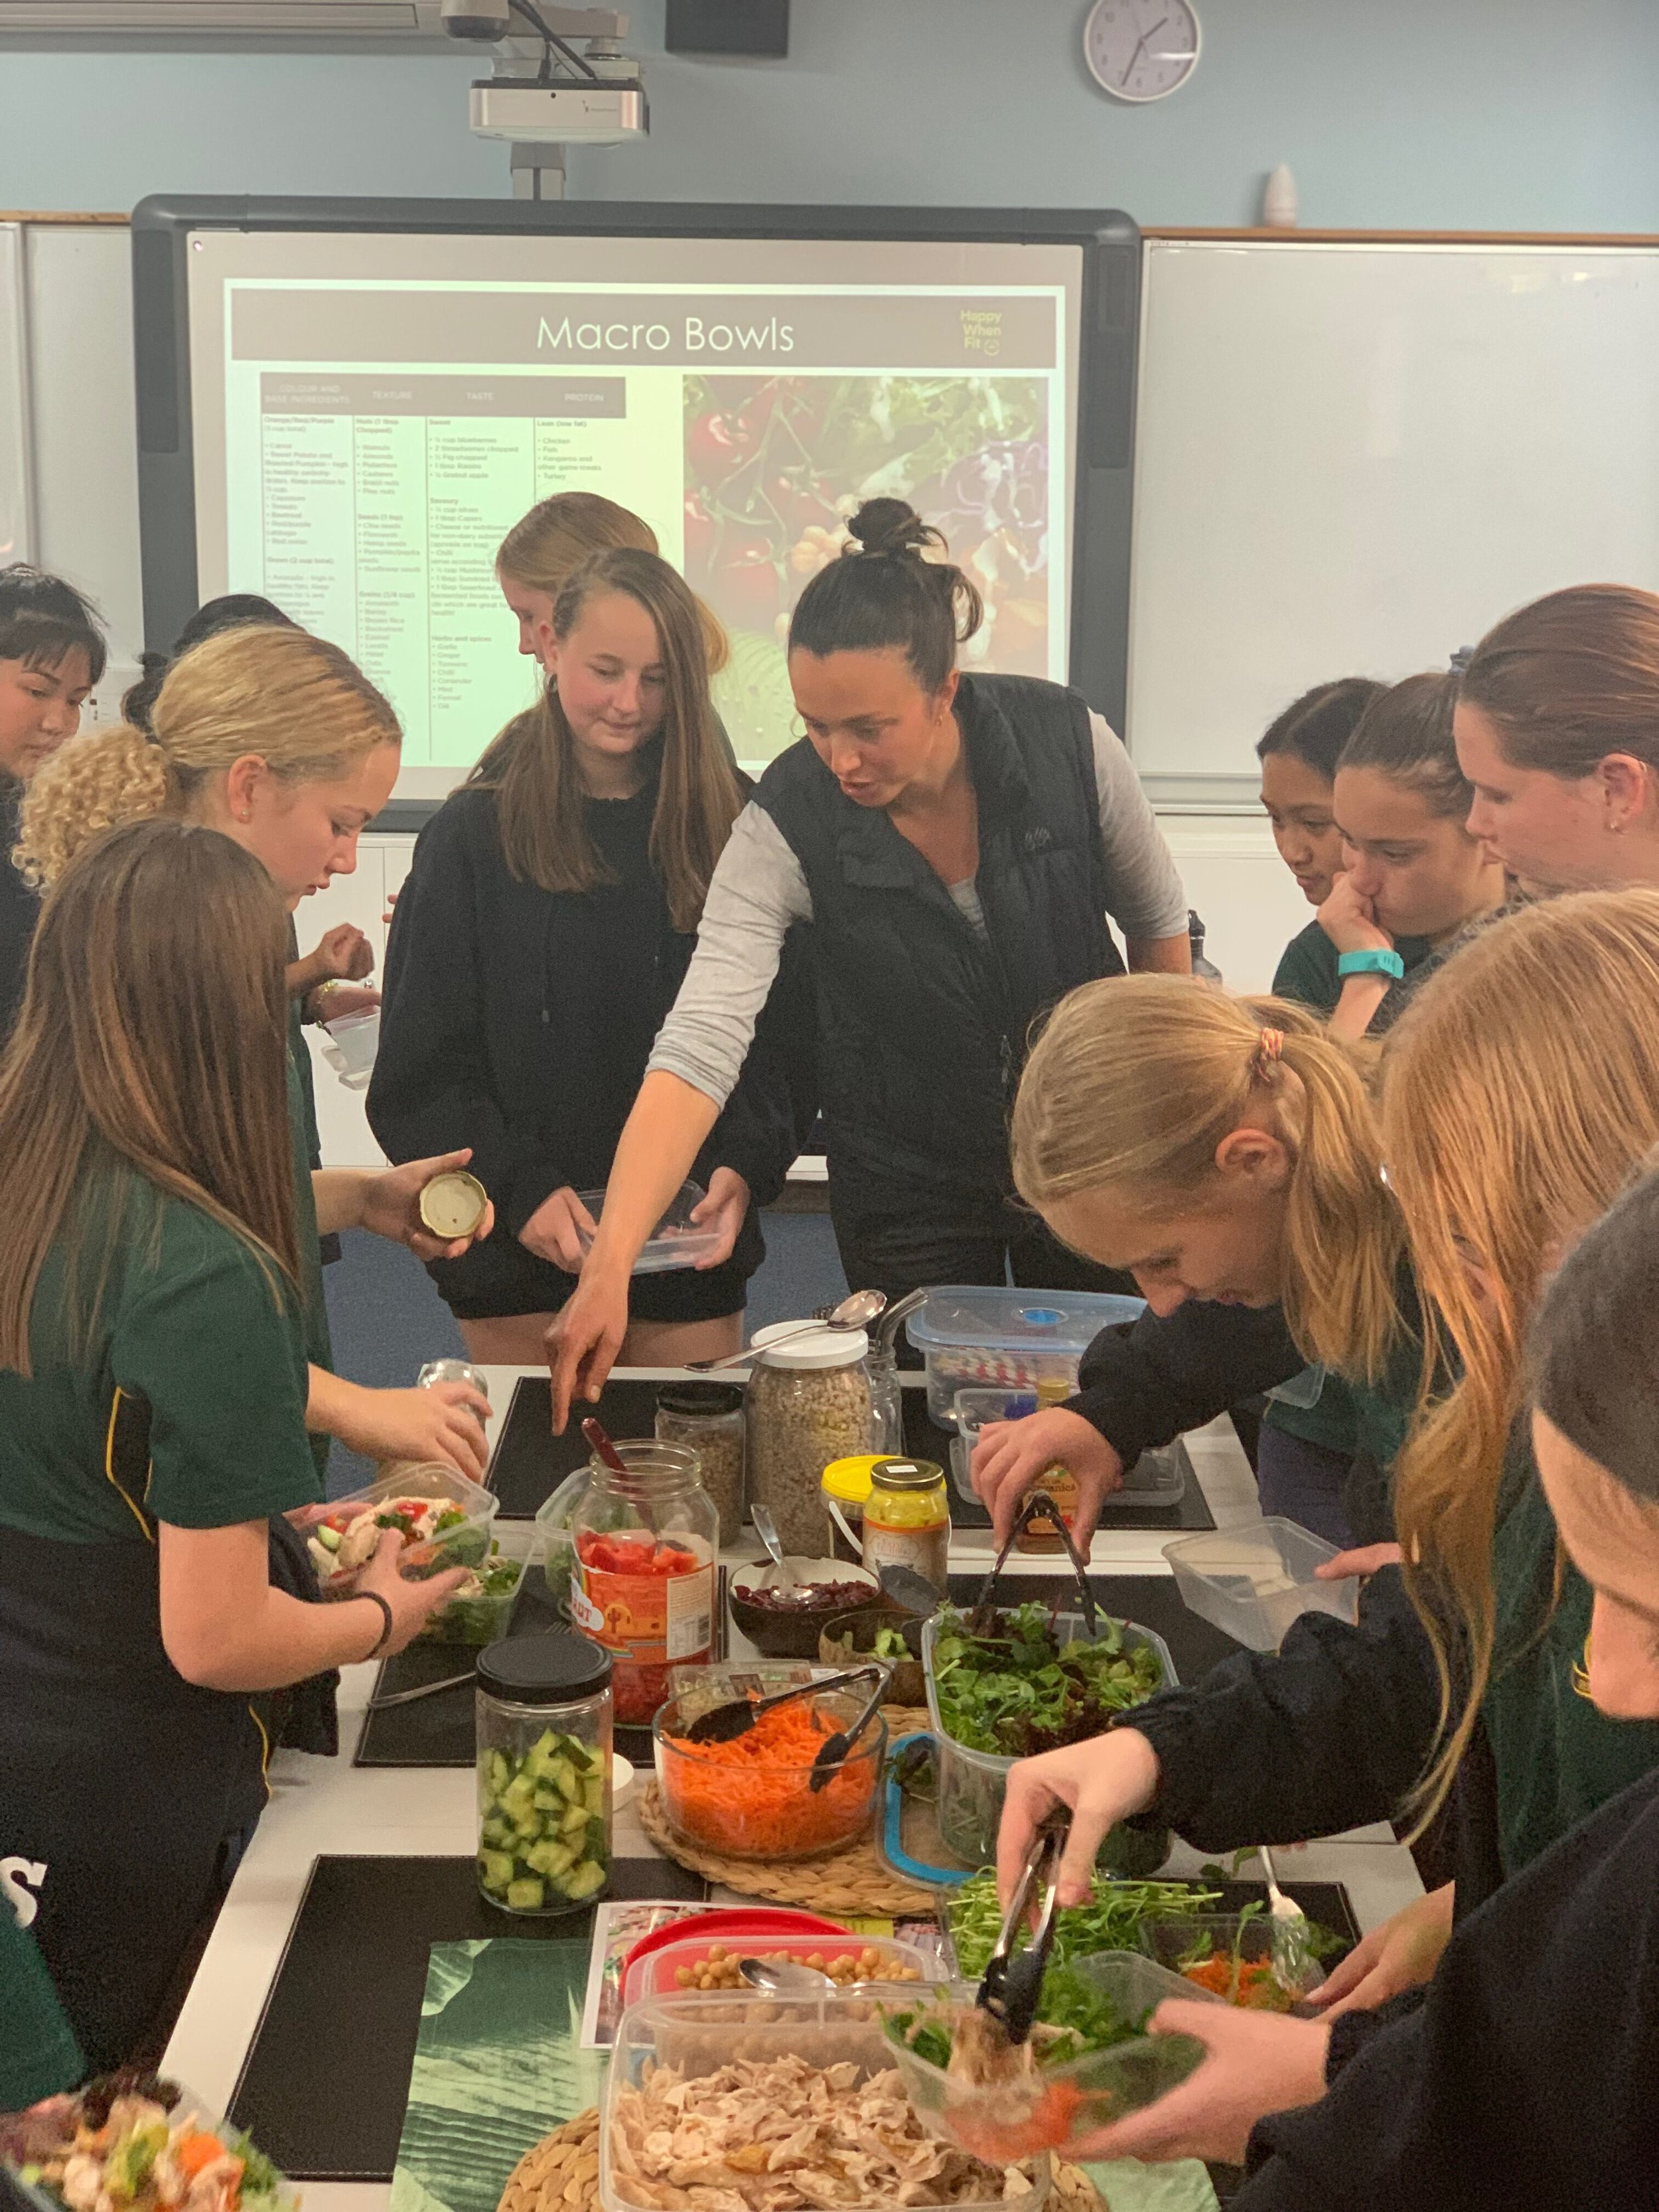 The Year 8 students of Harvey Highschool creating their Macro Bowls. Learning how to balance macro nutrient portions is a big part of the 3 week program.